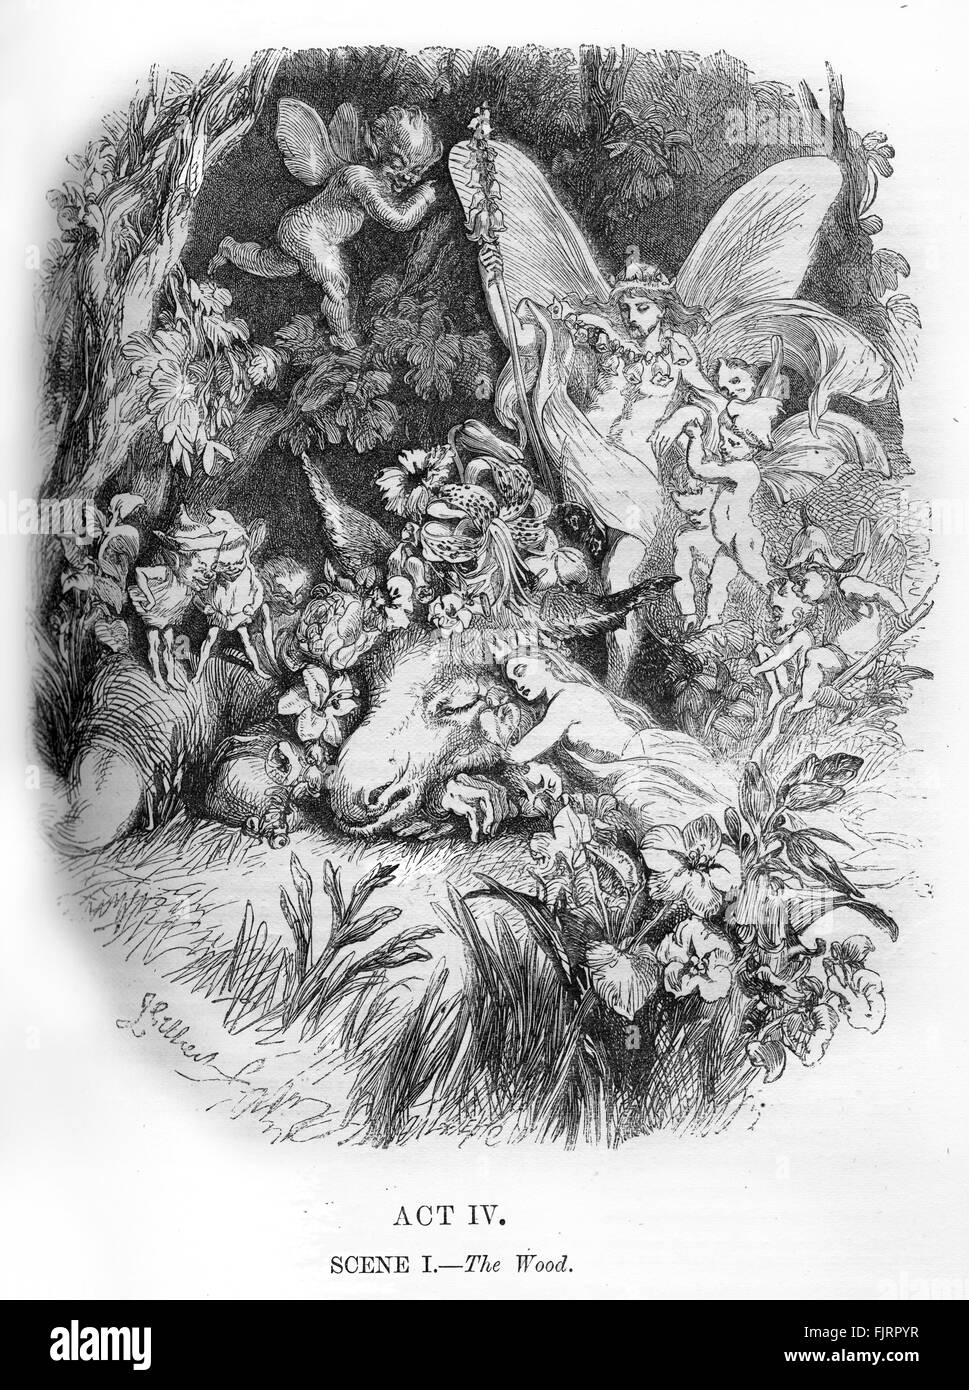 a review of william shakespeares midsummer nights dream English playwright william shakespeare wrote a midsummer night's dream in 1595-96, during his early comedic period the work considers the malleability of love, the potency of dreams, and the power of the imagination.